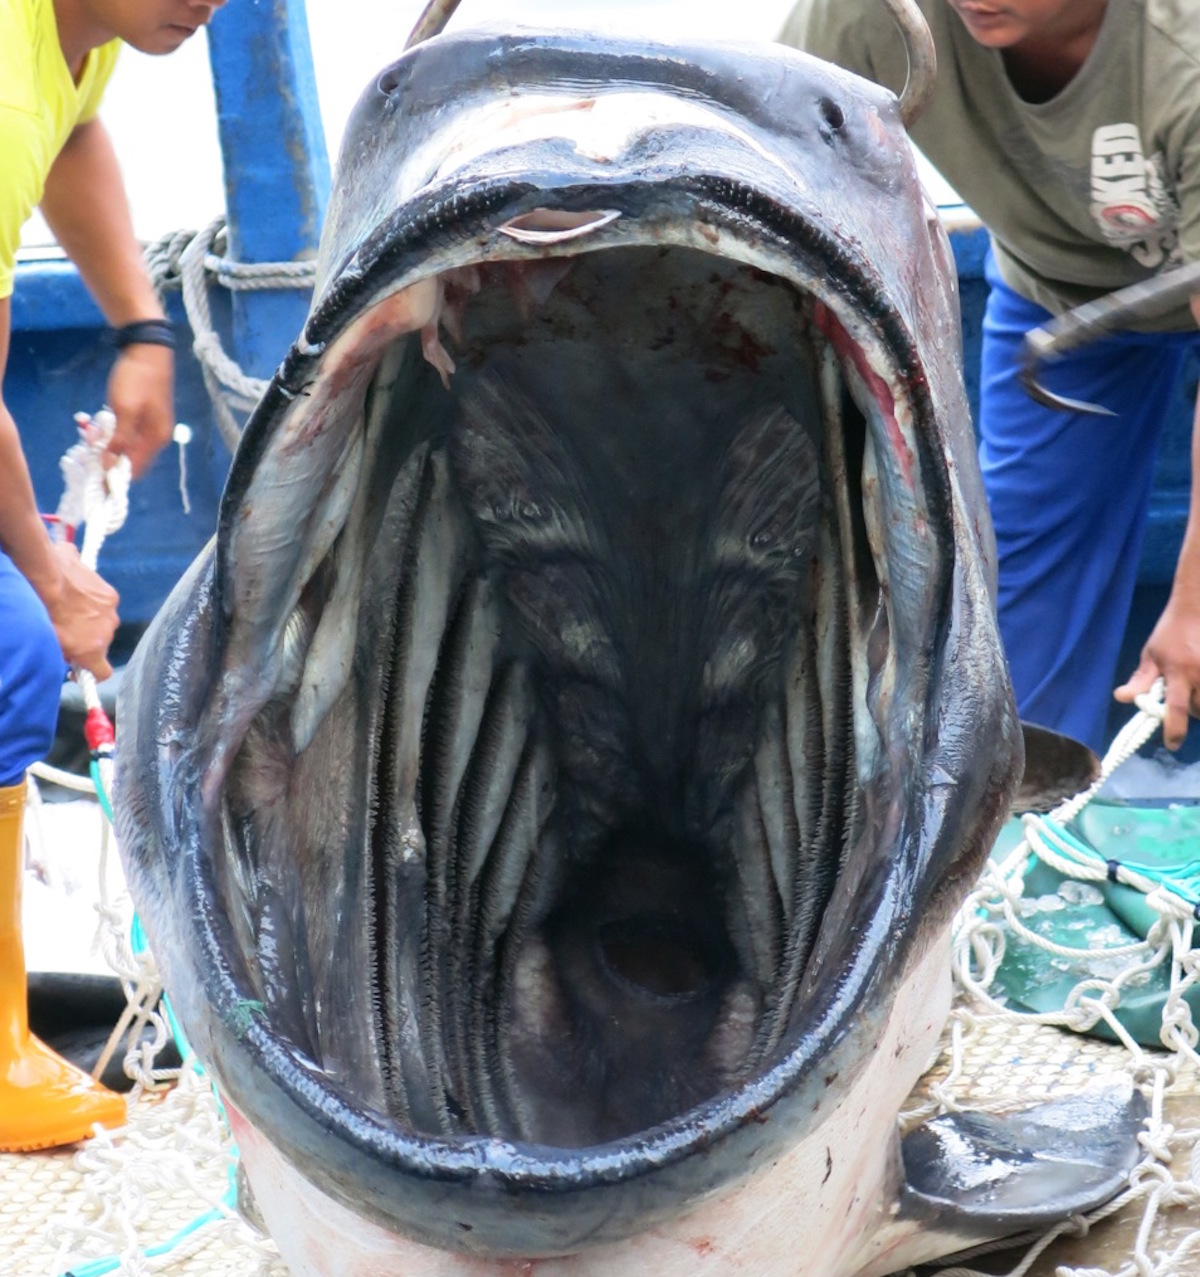 megamouth shark found california academy of sciences